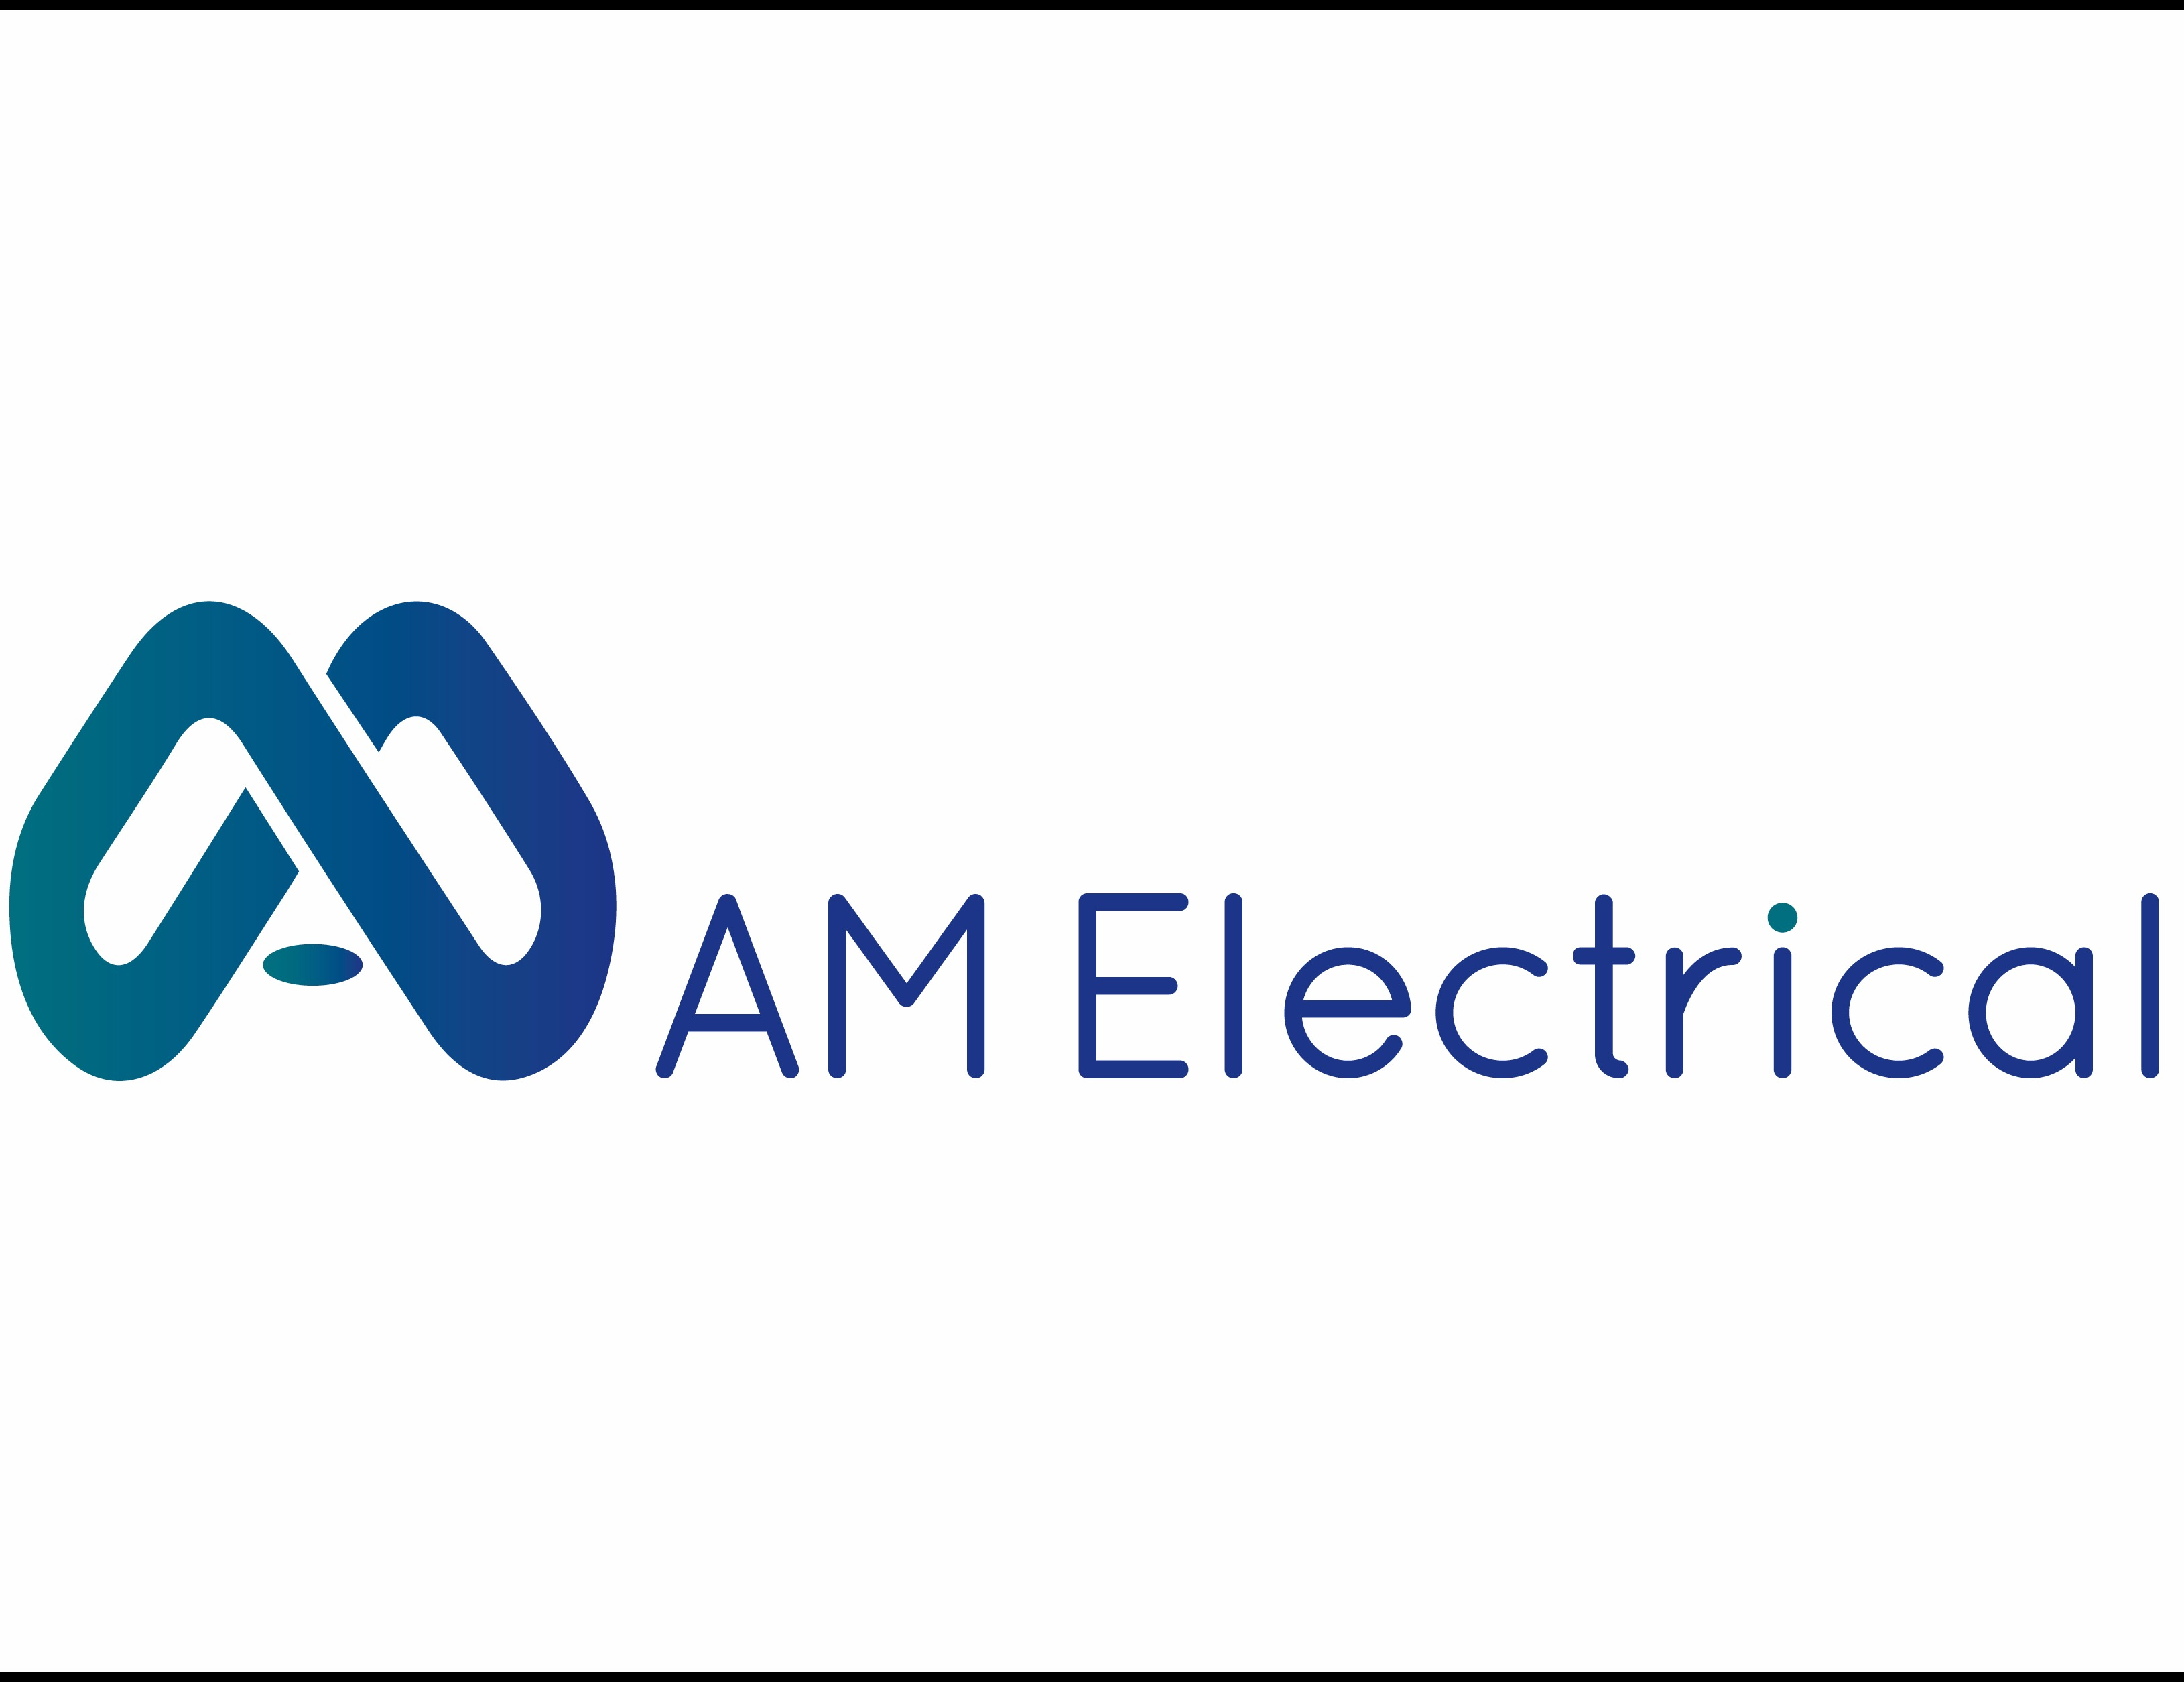 AM Electrical Limited